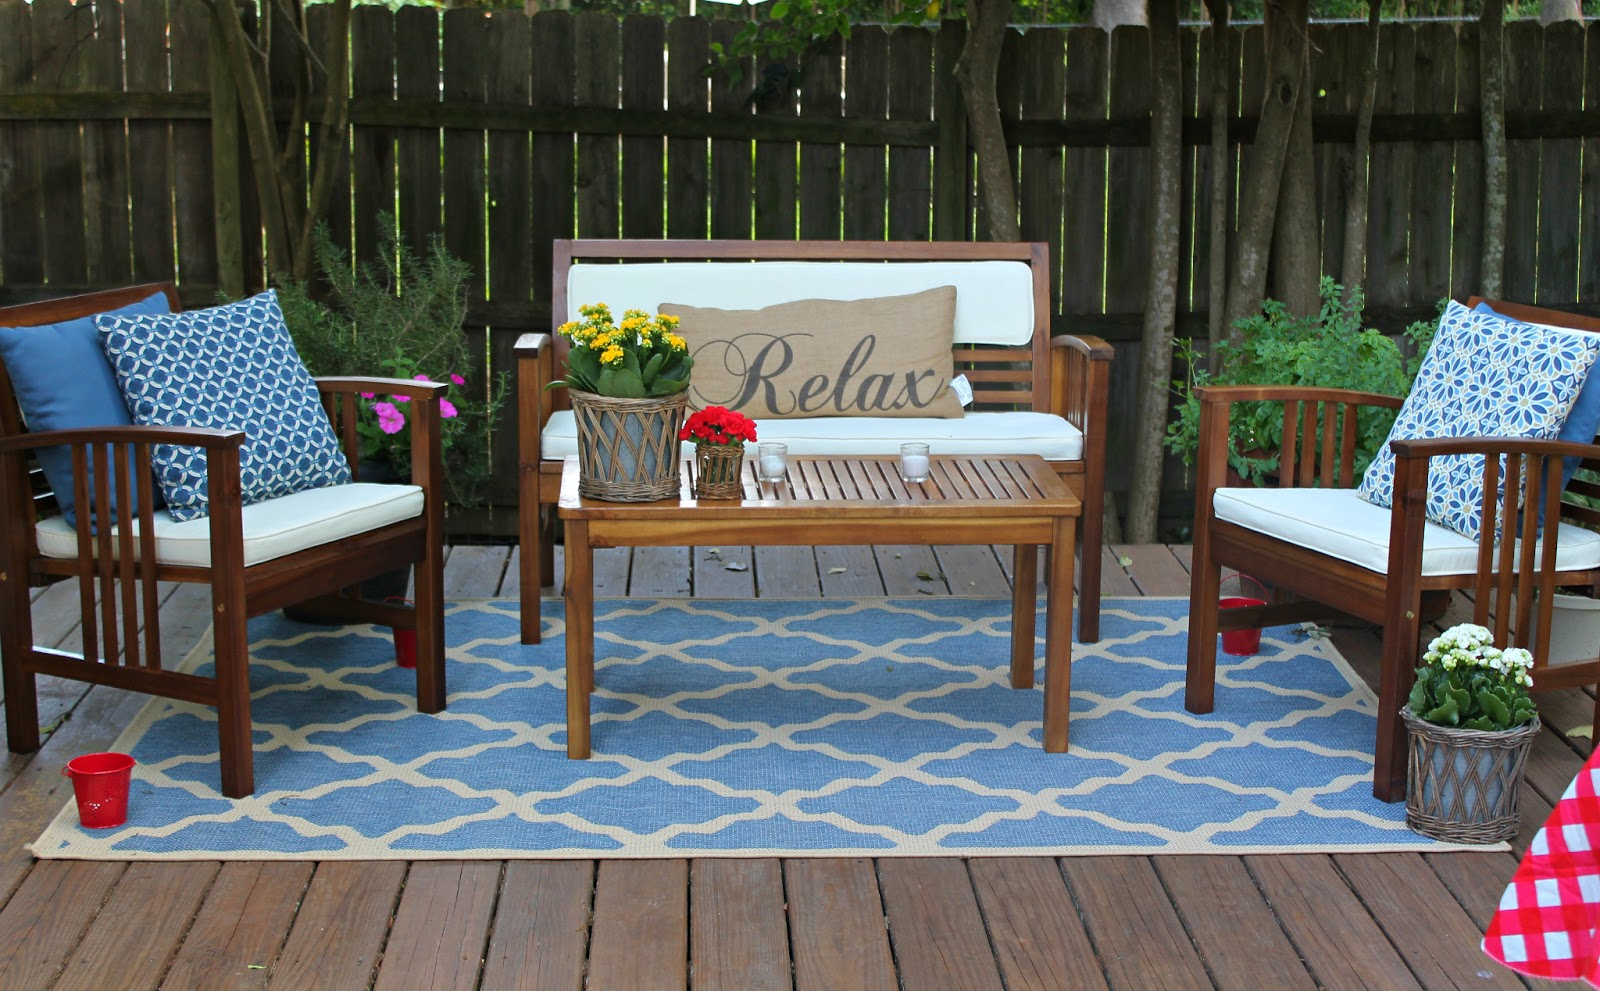 Wonderful Outdoor Rugs For Decks And Patio With World Market Outdoor Rugs With Comfy  Seating And Decorative